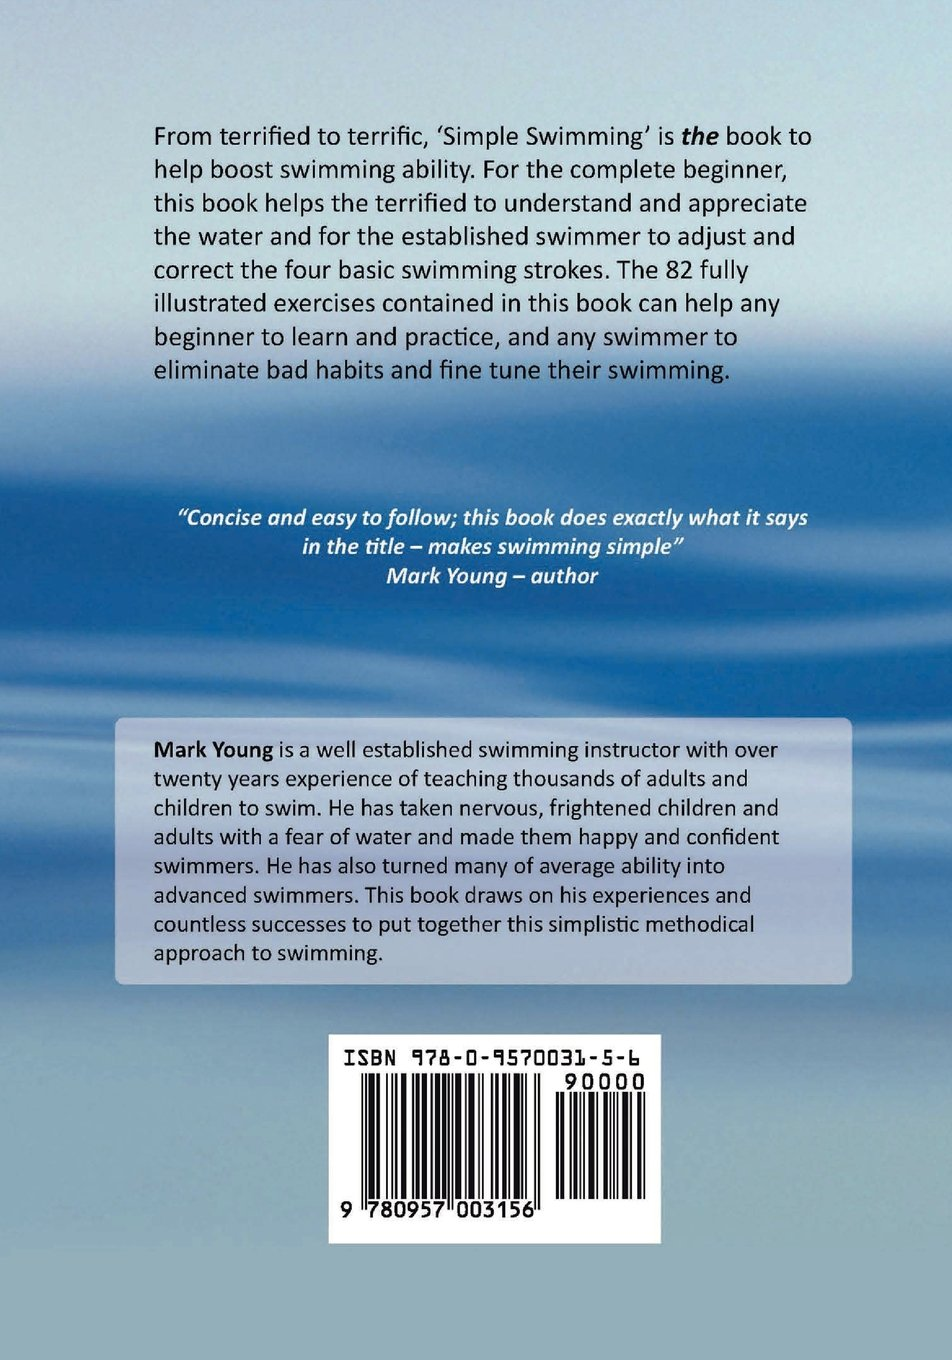 The Complete Guide To Simple Swimming: Everything You Need to Know from  Your First Entry into the Pool to Swimming the Four Basic Strokes: Mark  Young: ...